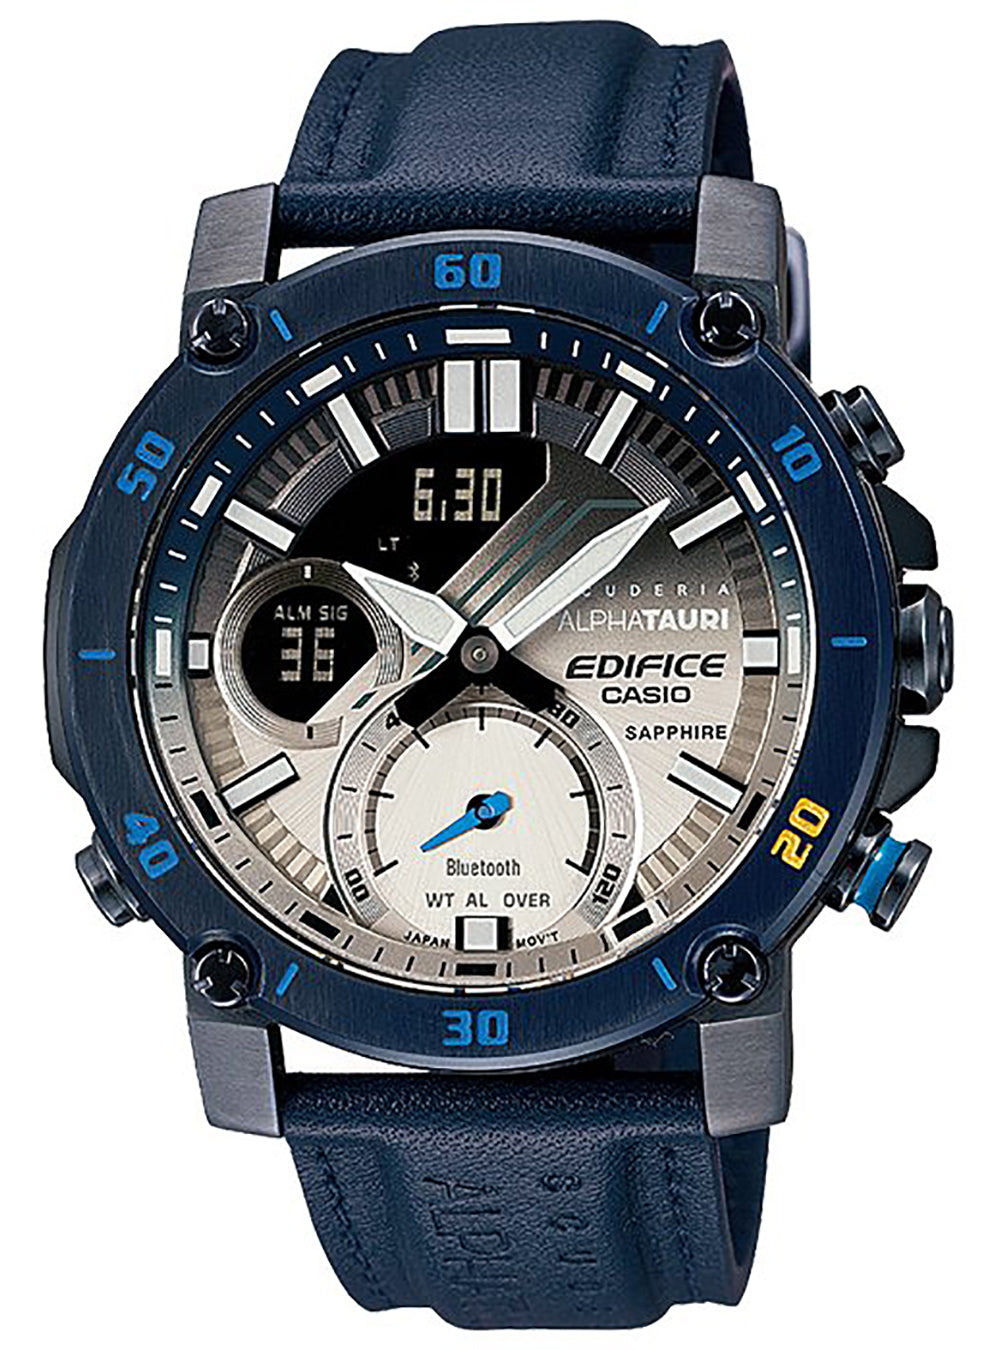 CASIO EDIFICE Scuderia AlphaTauri Limited Edition ECB-20AT-2AJR JAPAN MOV'T JDM